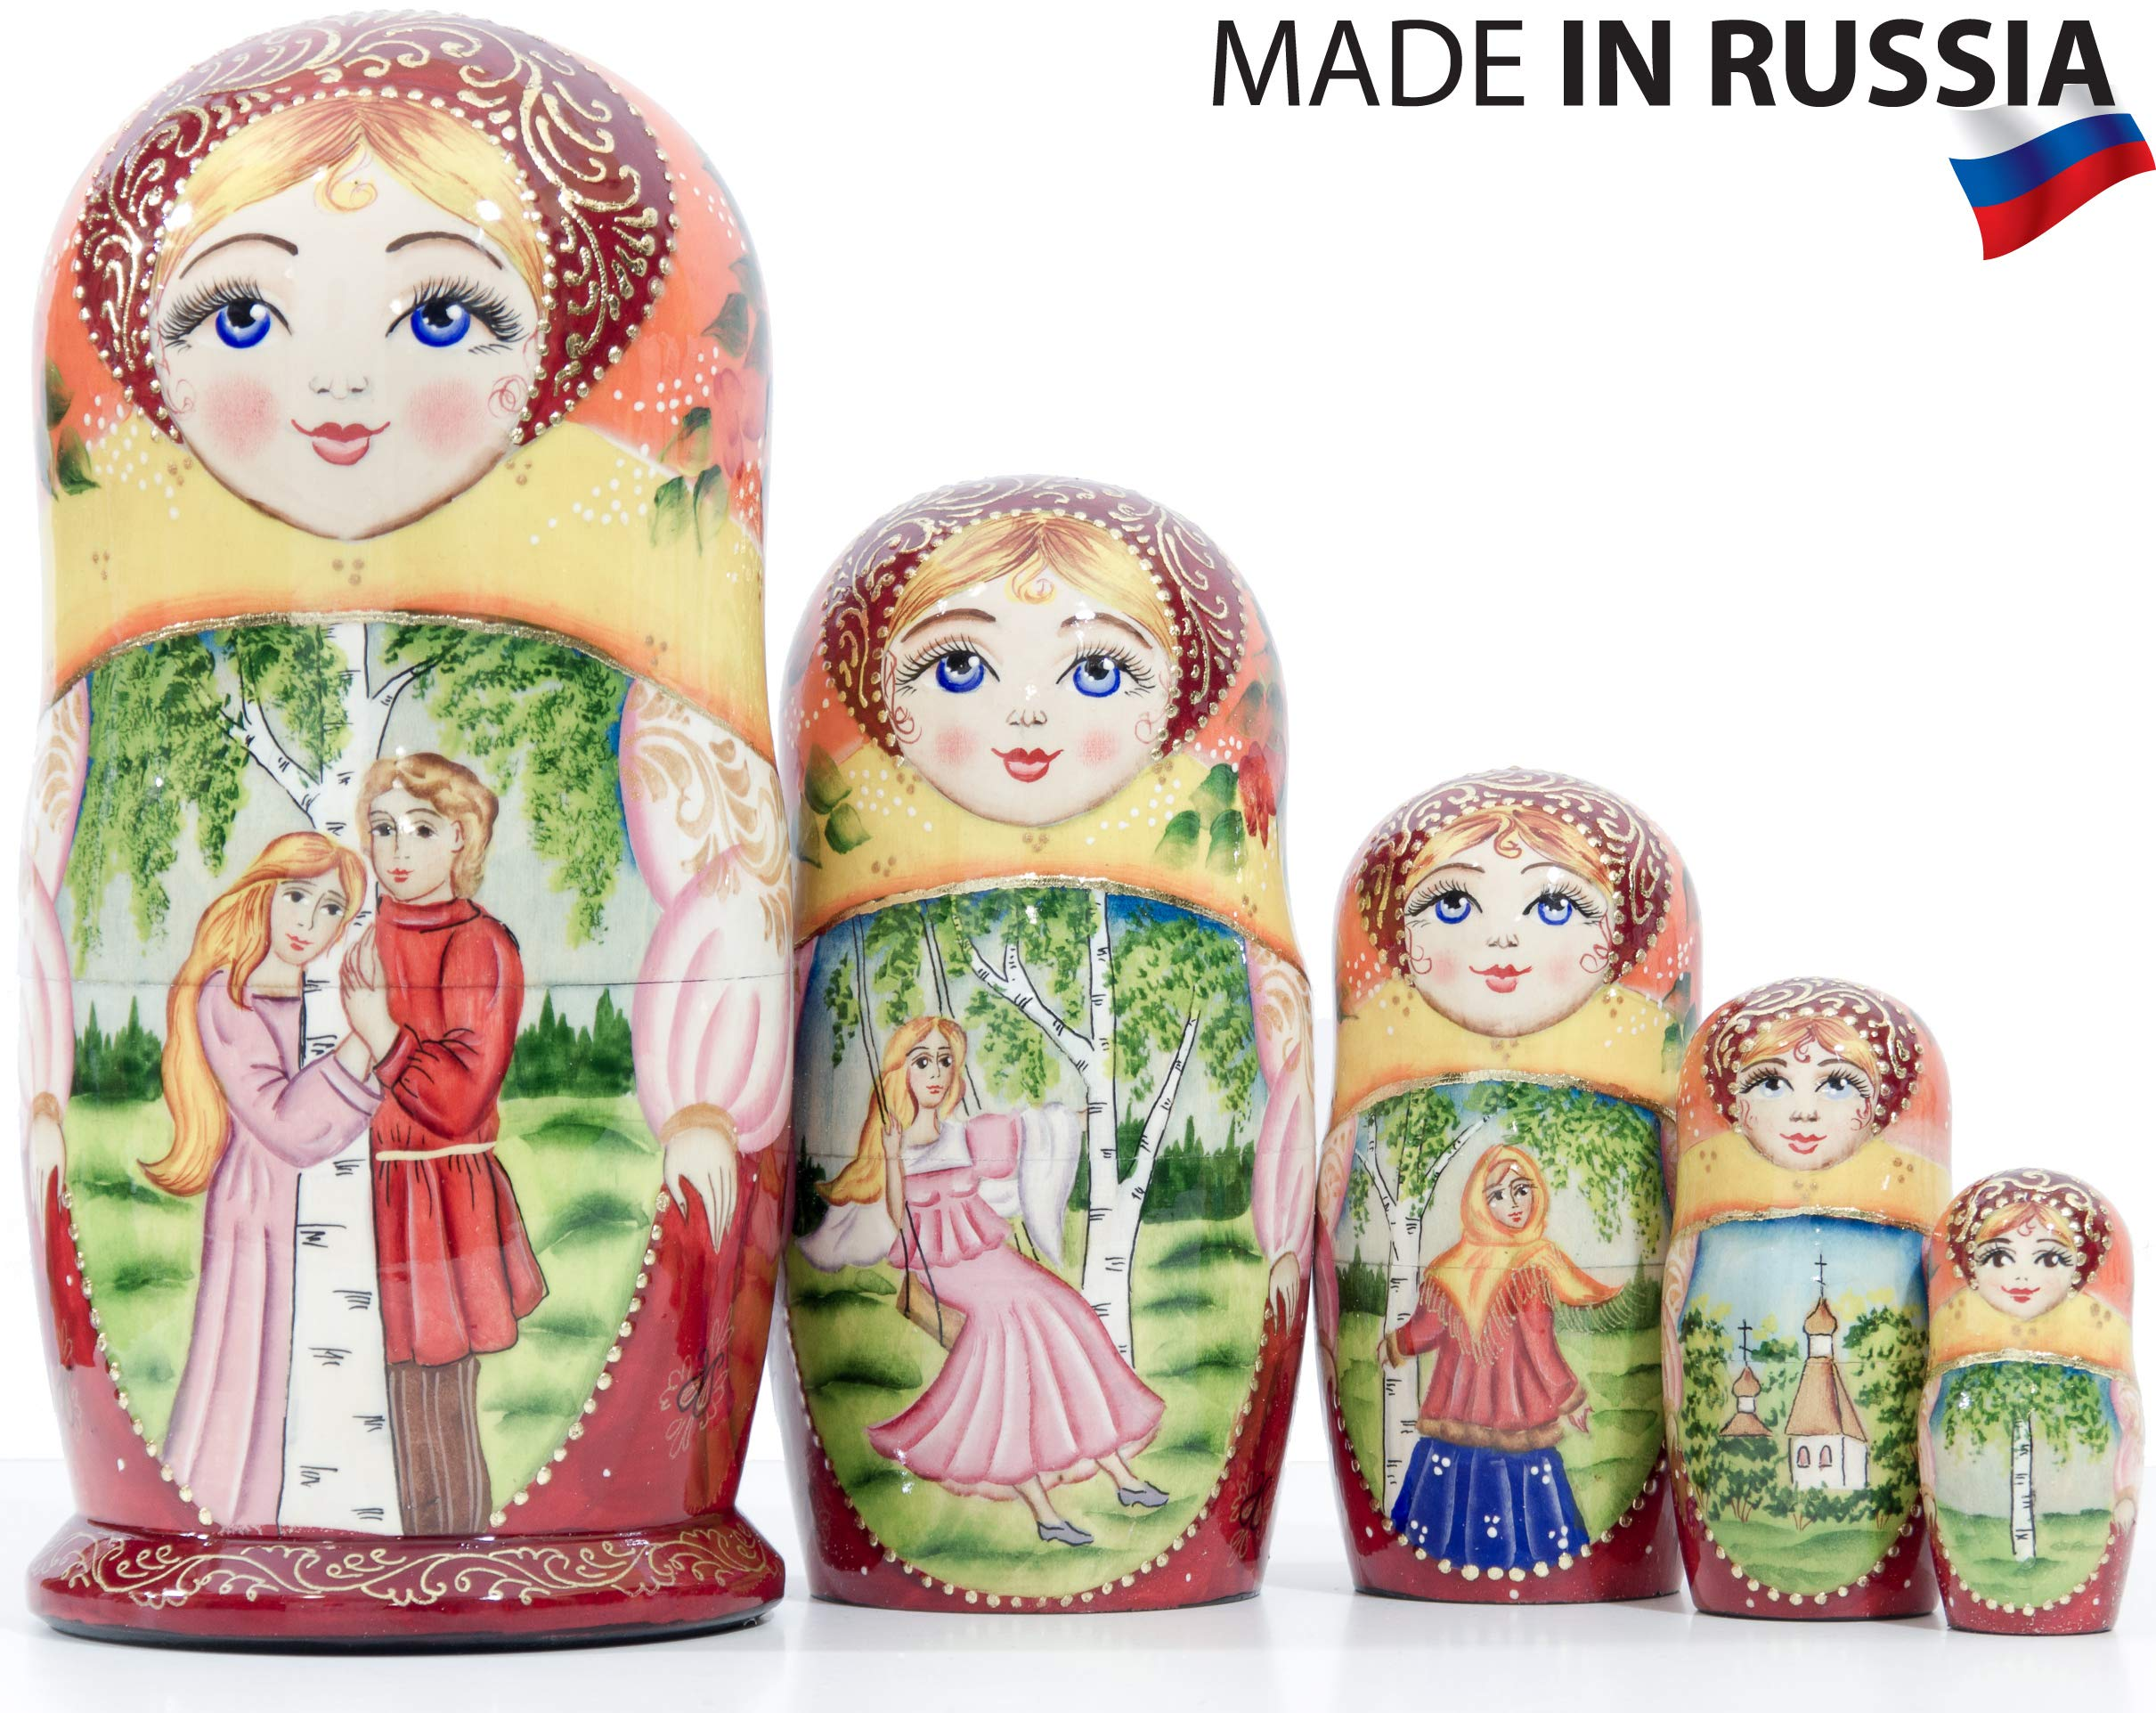 Russian Nesting Doll - Village Scenes - Hand Painted in Russia - 5 Color/Size Variations - Traditional Matryoshka Babushka (6.75``(5 Dolls in 1), Scene L) by craftsfromrussia (Image #1)